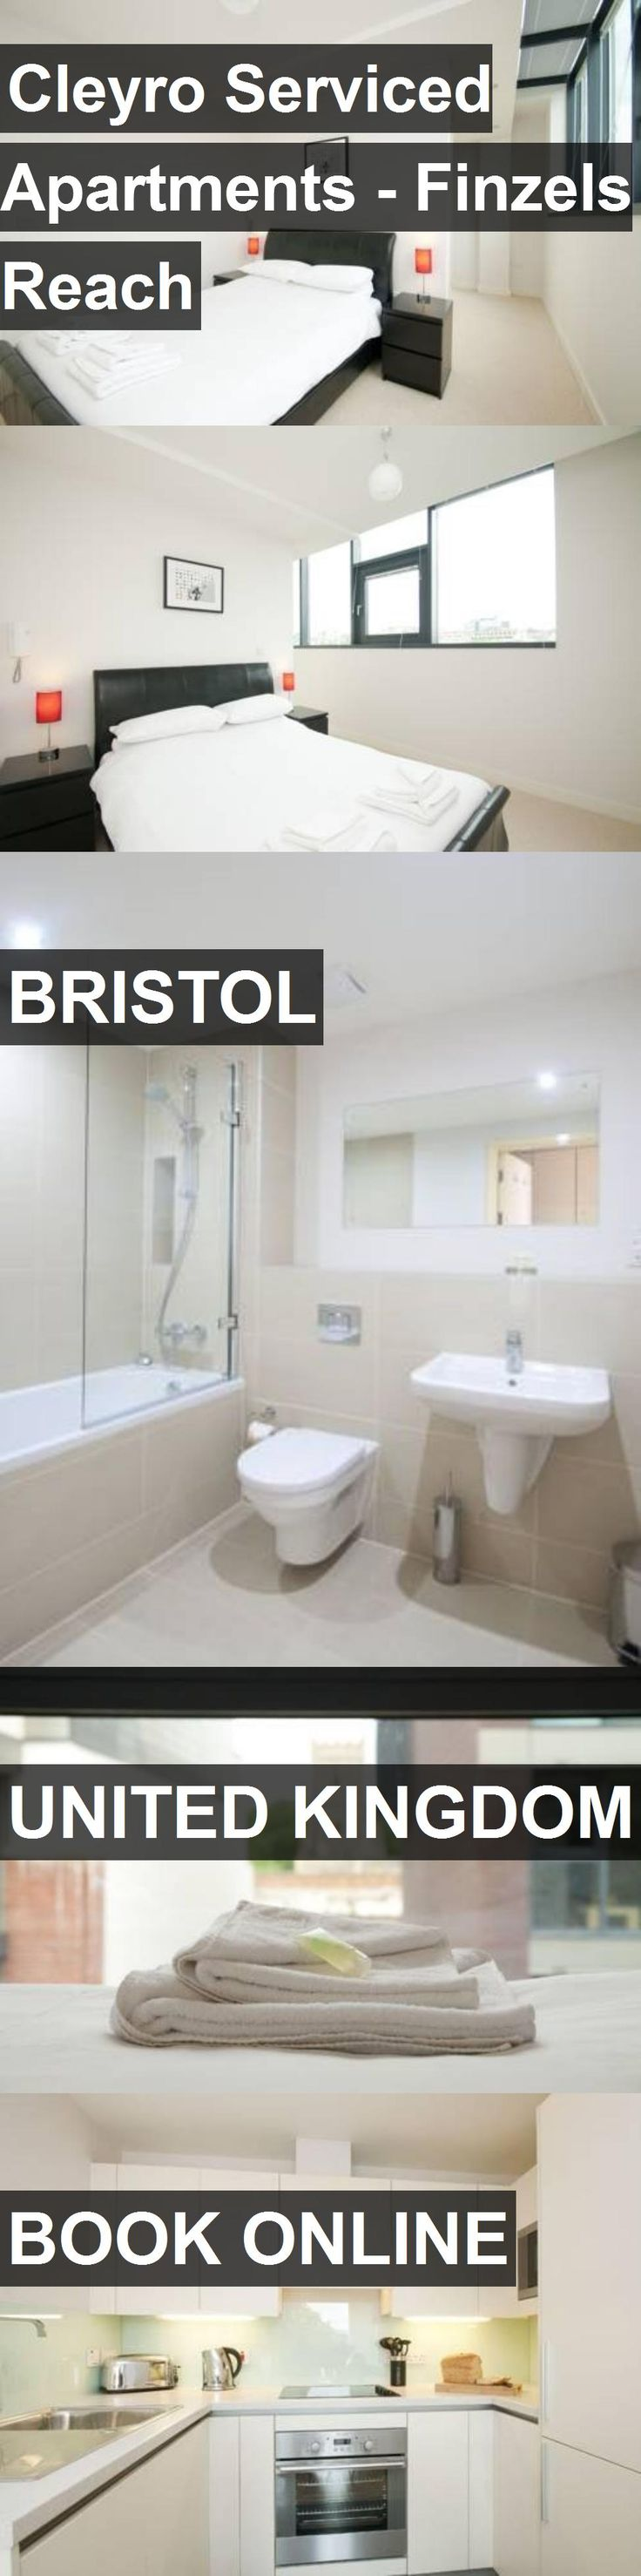 Hotel Cleyro Serviced Apartments - Finzels Reach in Bristol, United Kingdom. For more information, photos, reviews and best prices please follow the link. #UnitedKingdom #Bristol #hotel #travel #vacation